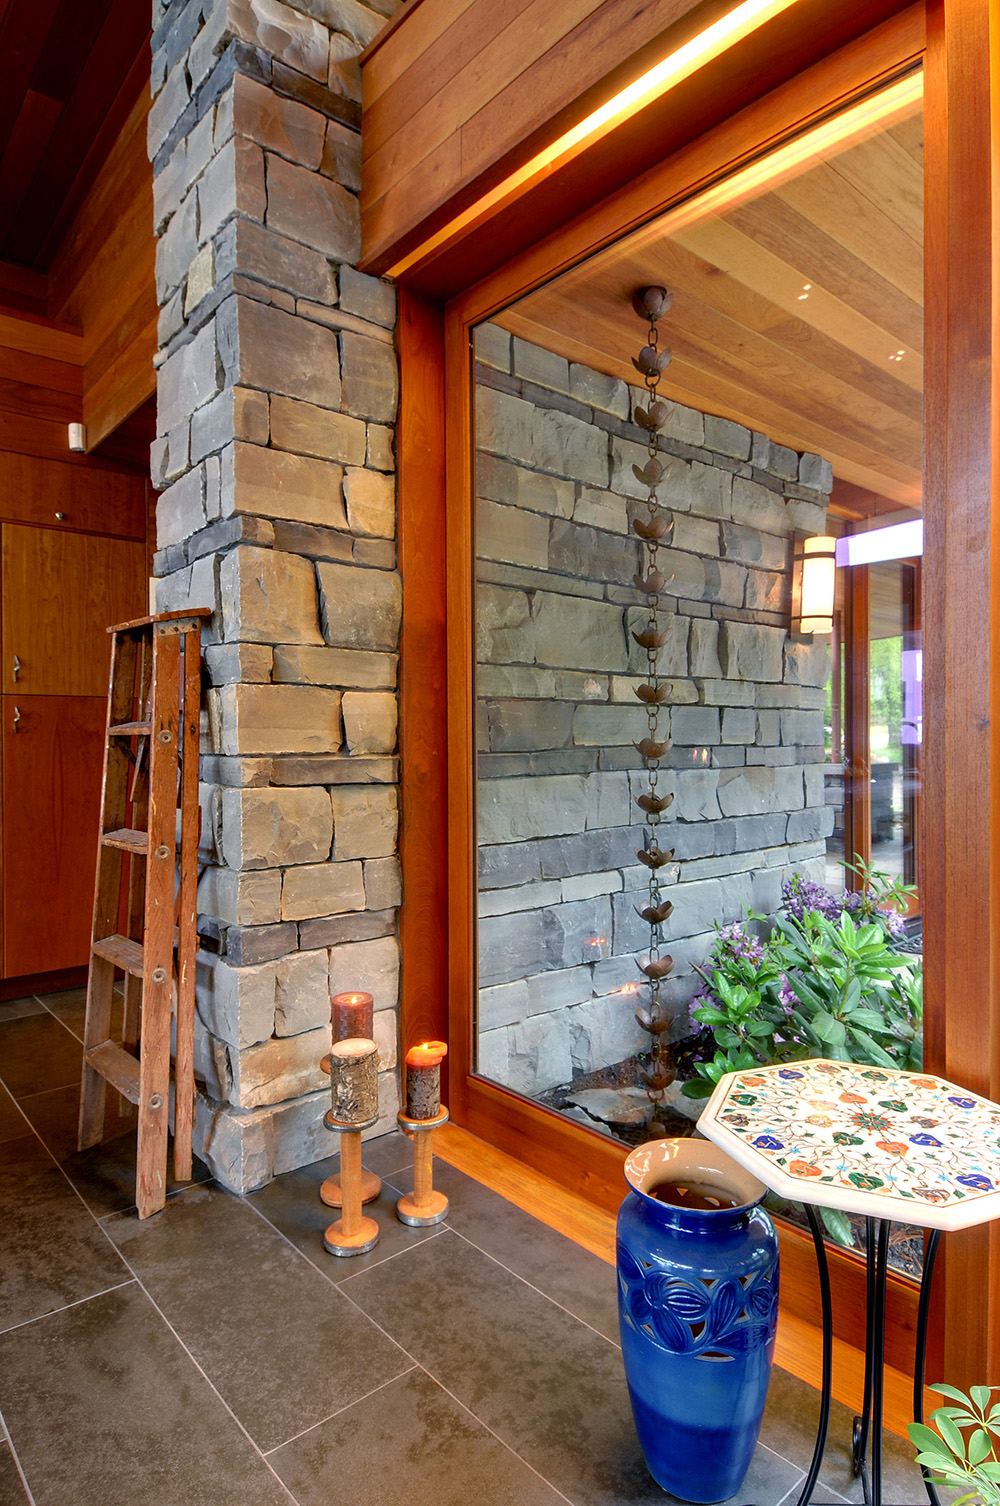 Large wood frame sliding glass door set into exposed stone wall with a recessed valance light